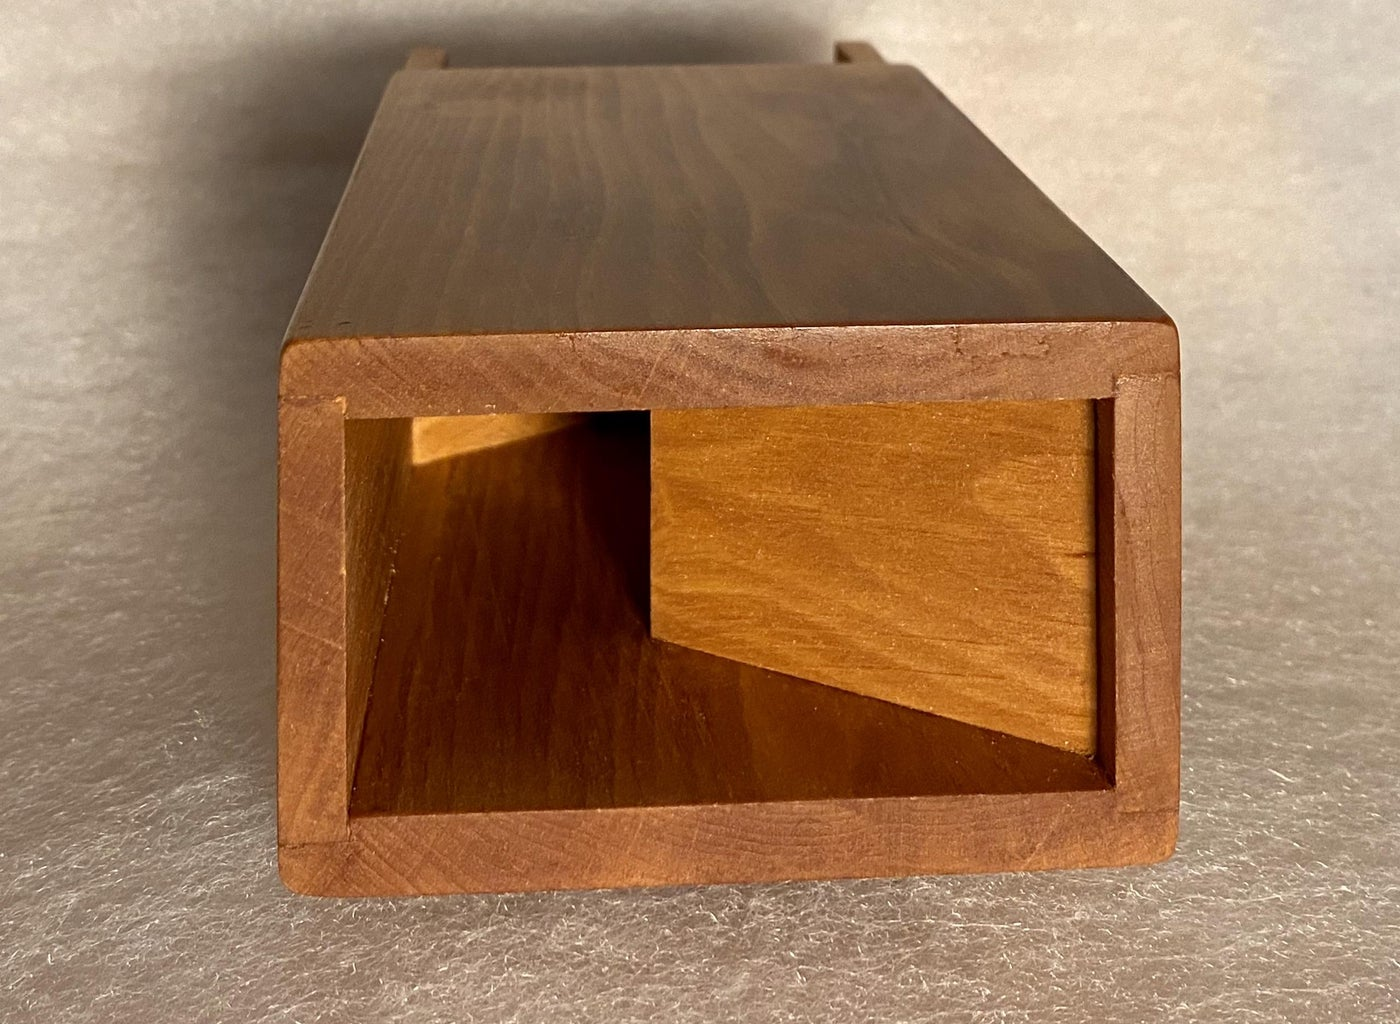 Wooden Dice Tower - Hand Tools Only